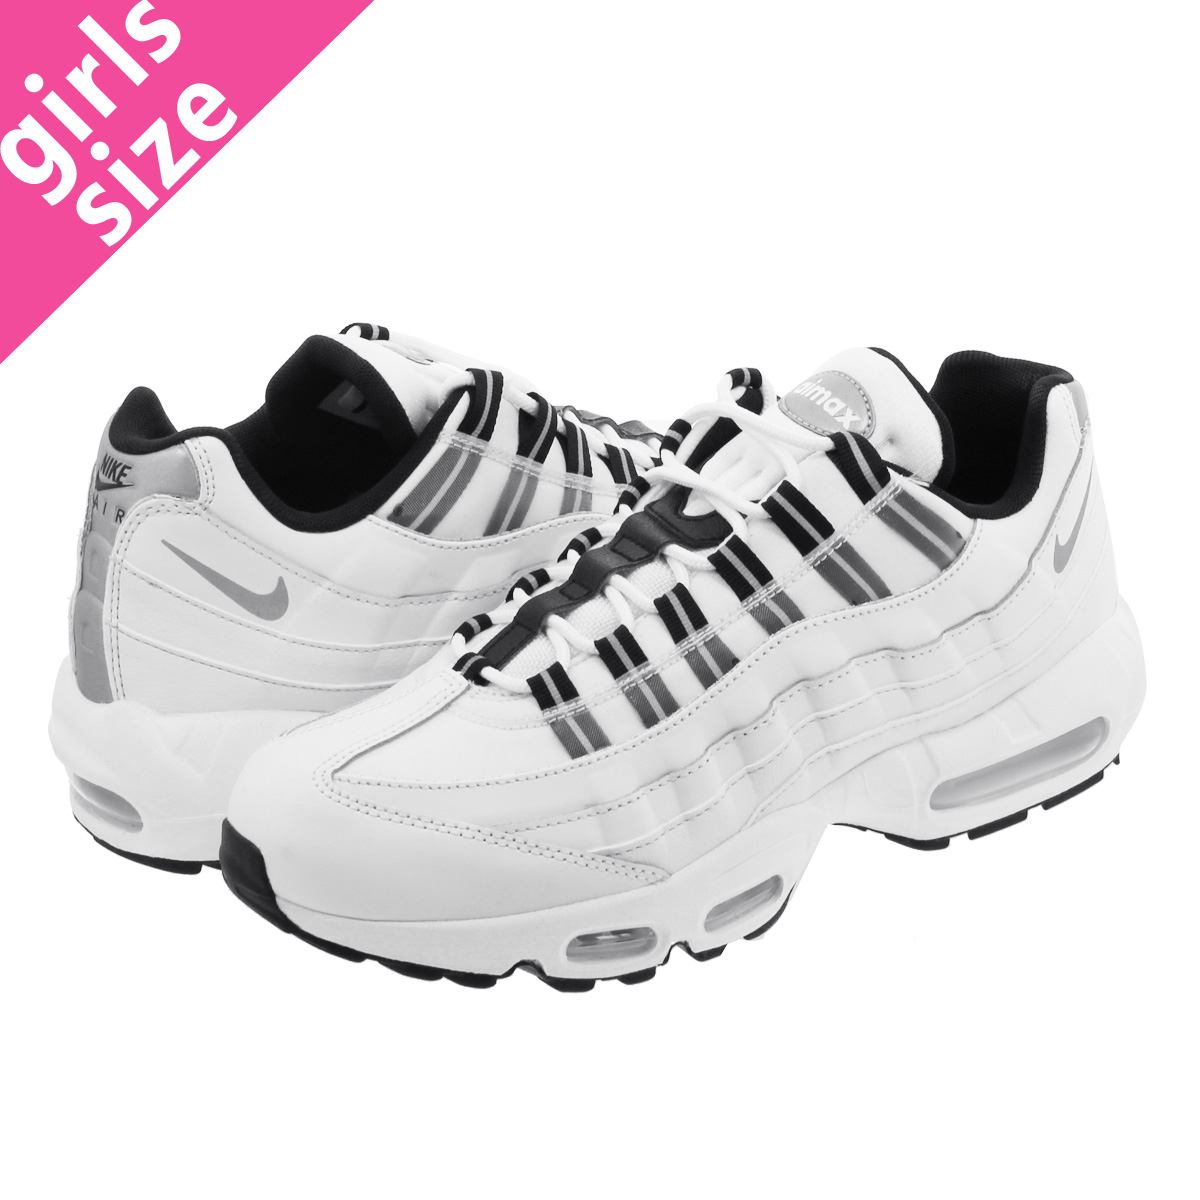 6e6dc509a1e00 NIKE WMNS AIR MAX 95 Nike women Air Max 95 SUMMIT WHITE REFLECT  SILVER SUMMIT WHITE BLACK 307